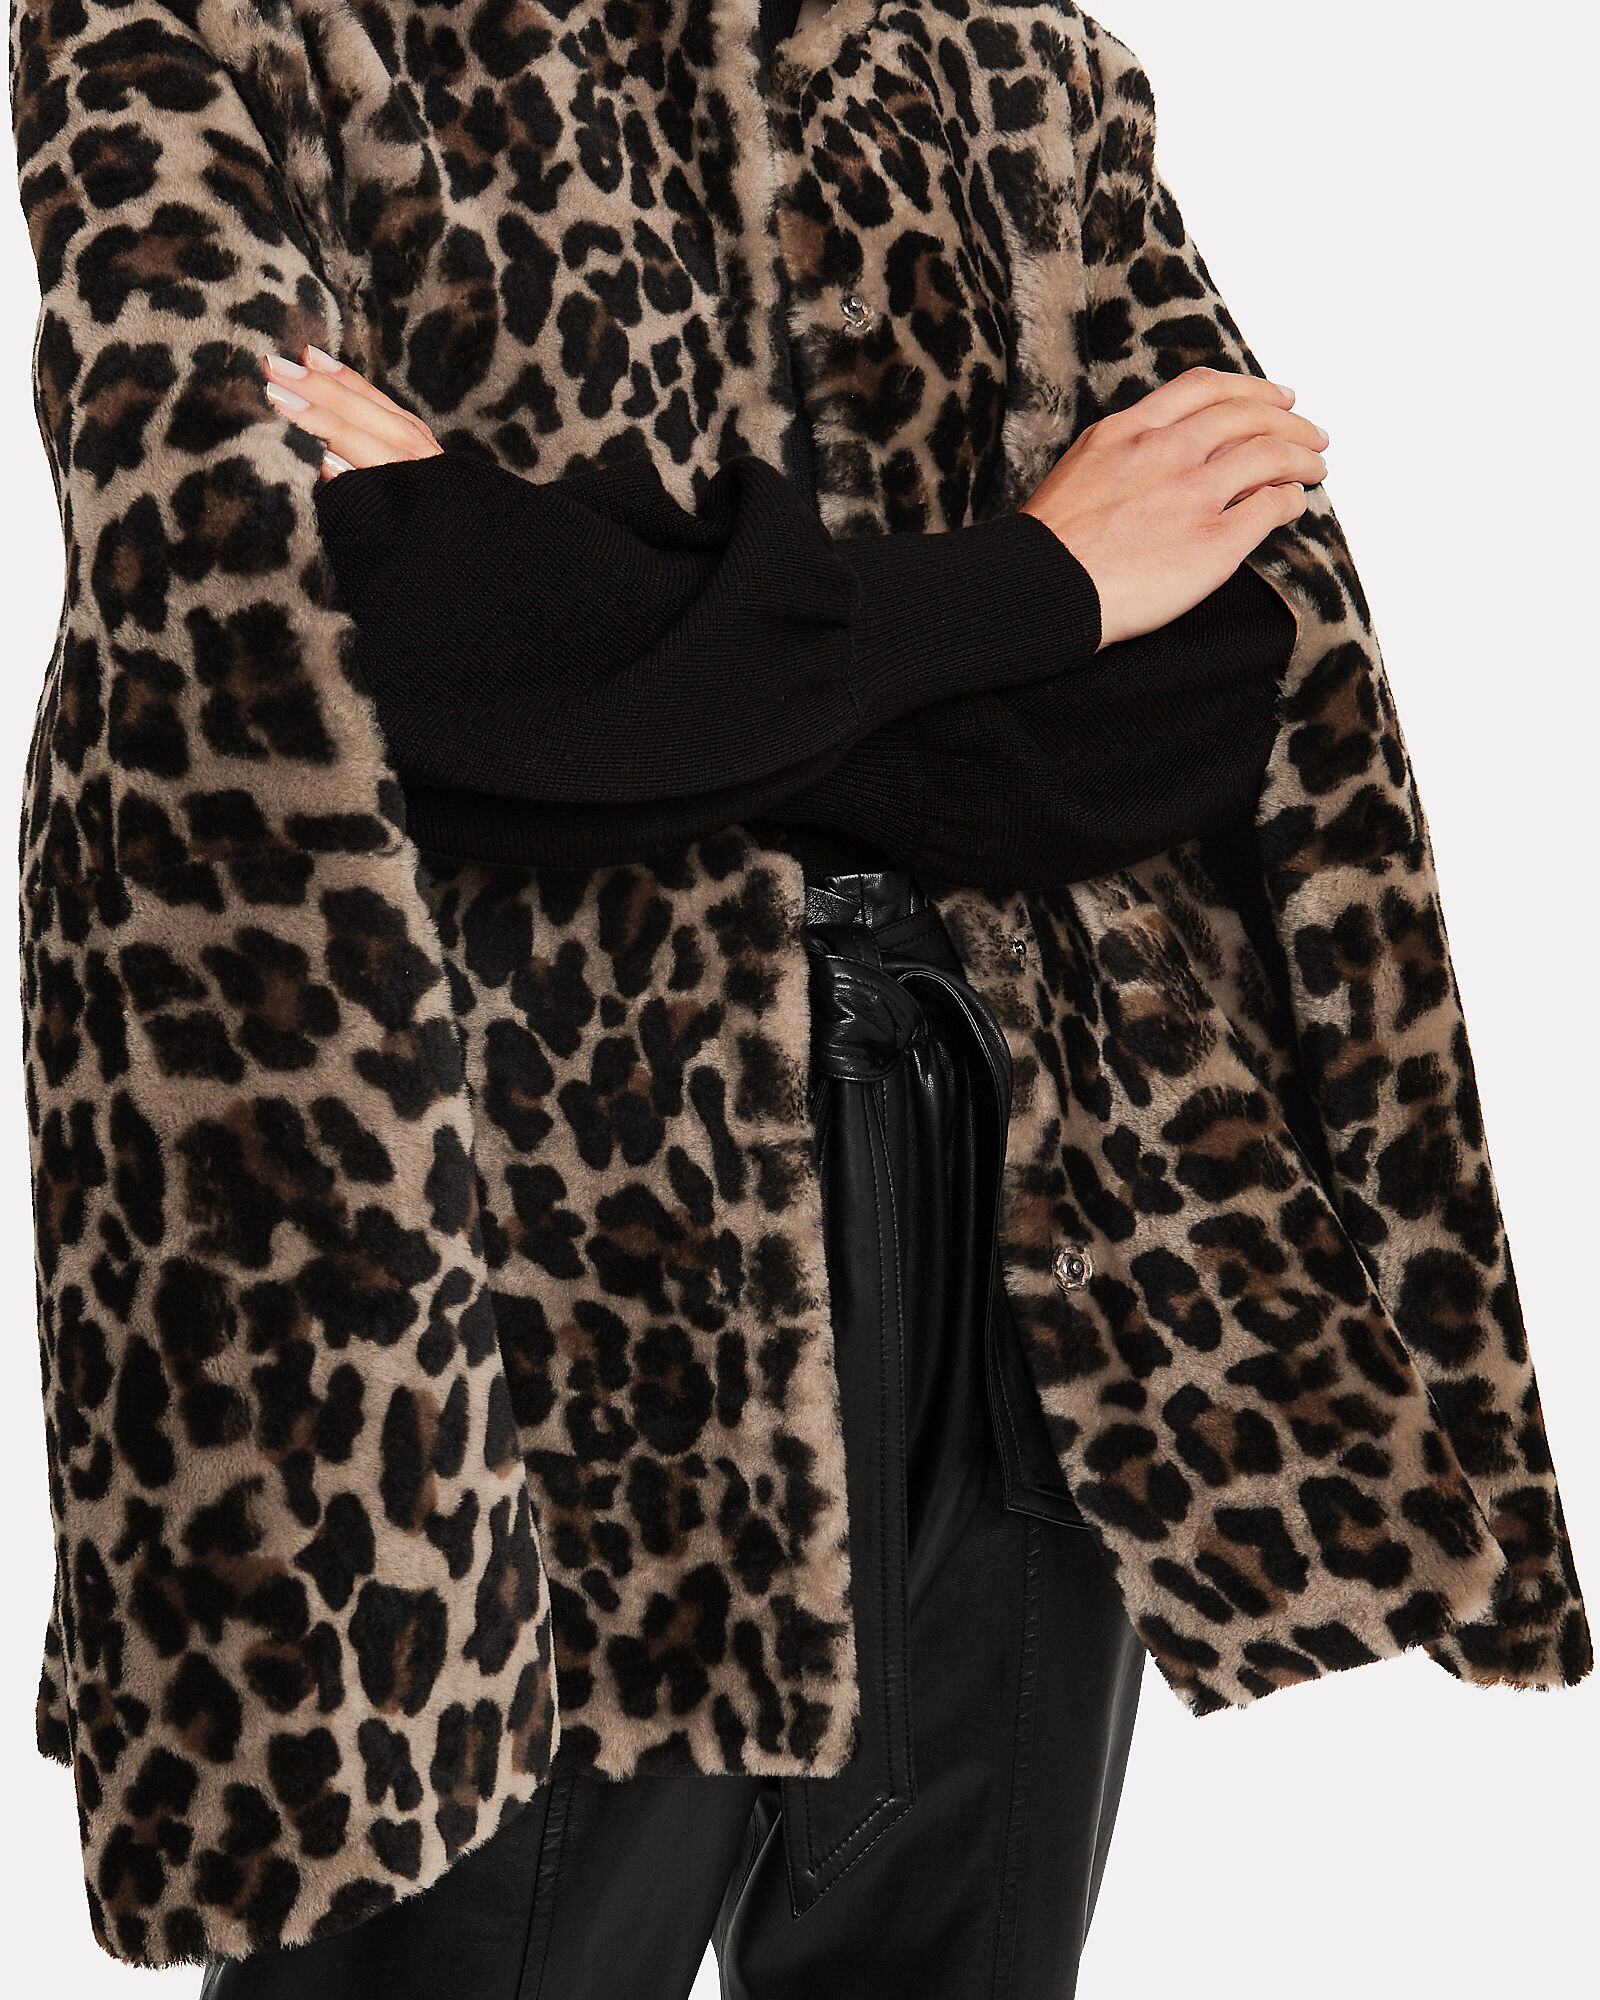 Leopard-Printed Shearling Cape, BROWN, hi-res